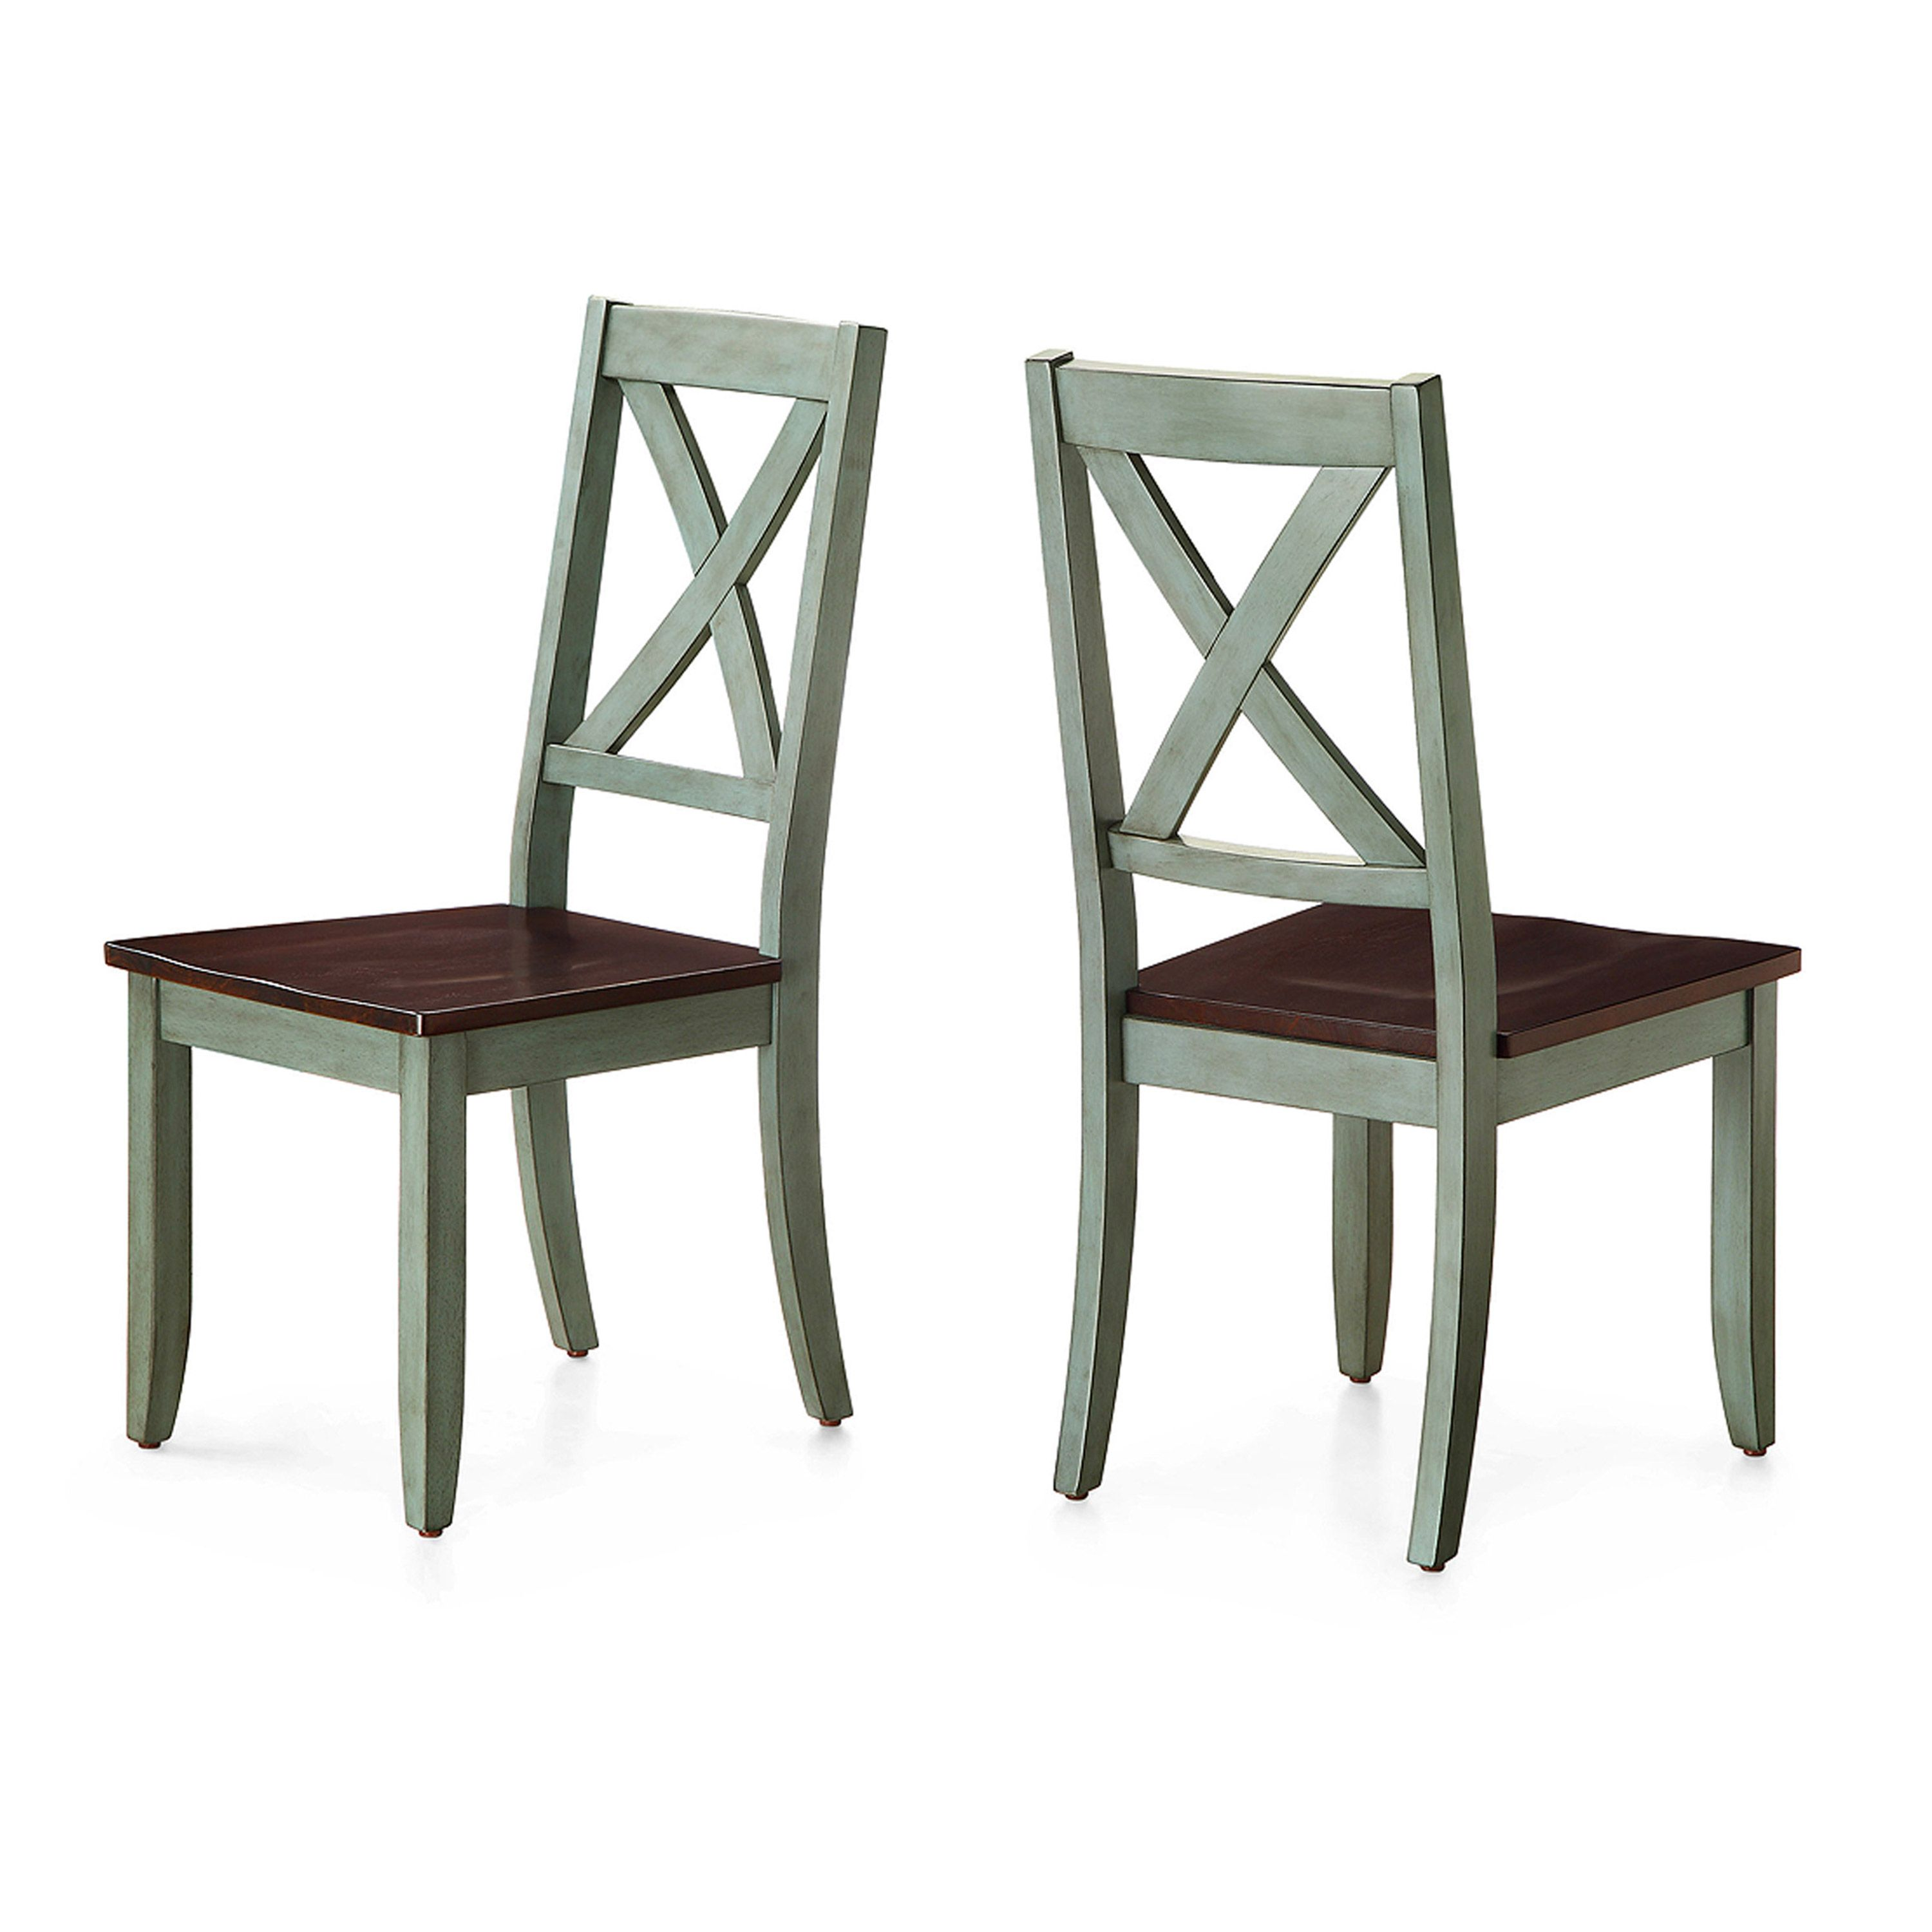 6cbea132b17d8c45587212677fa25f7c - Better Homes And Gardens Bankston Dining Chair White 2 Pack